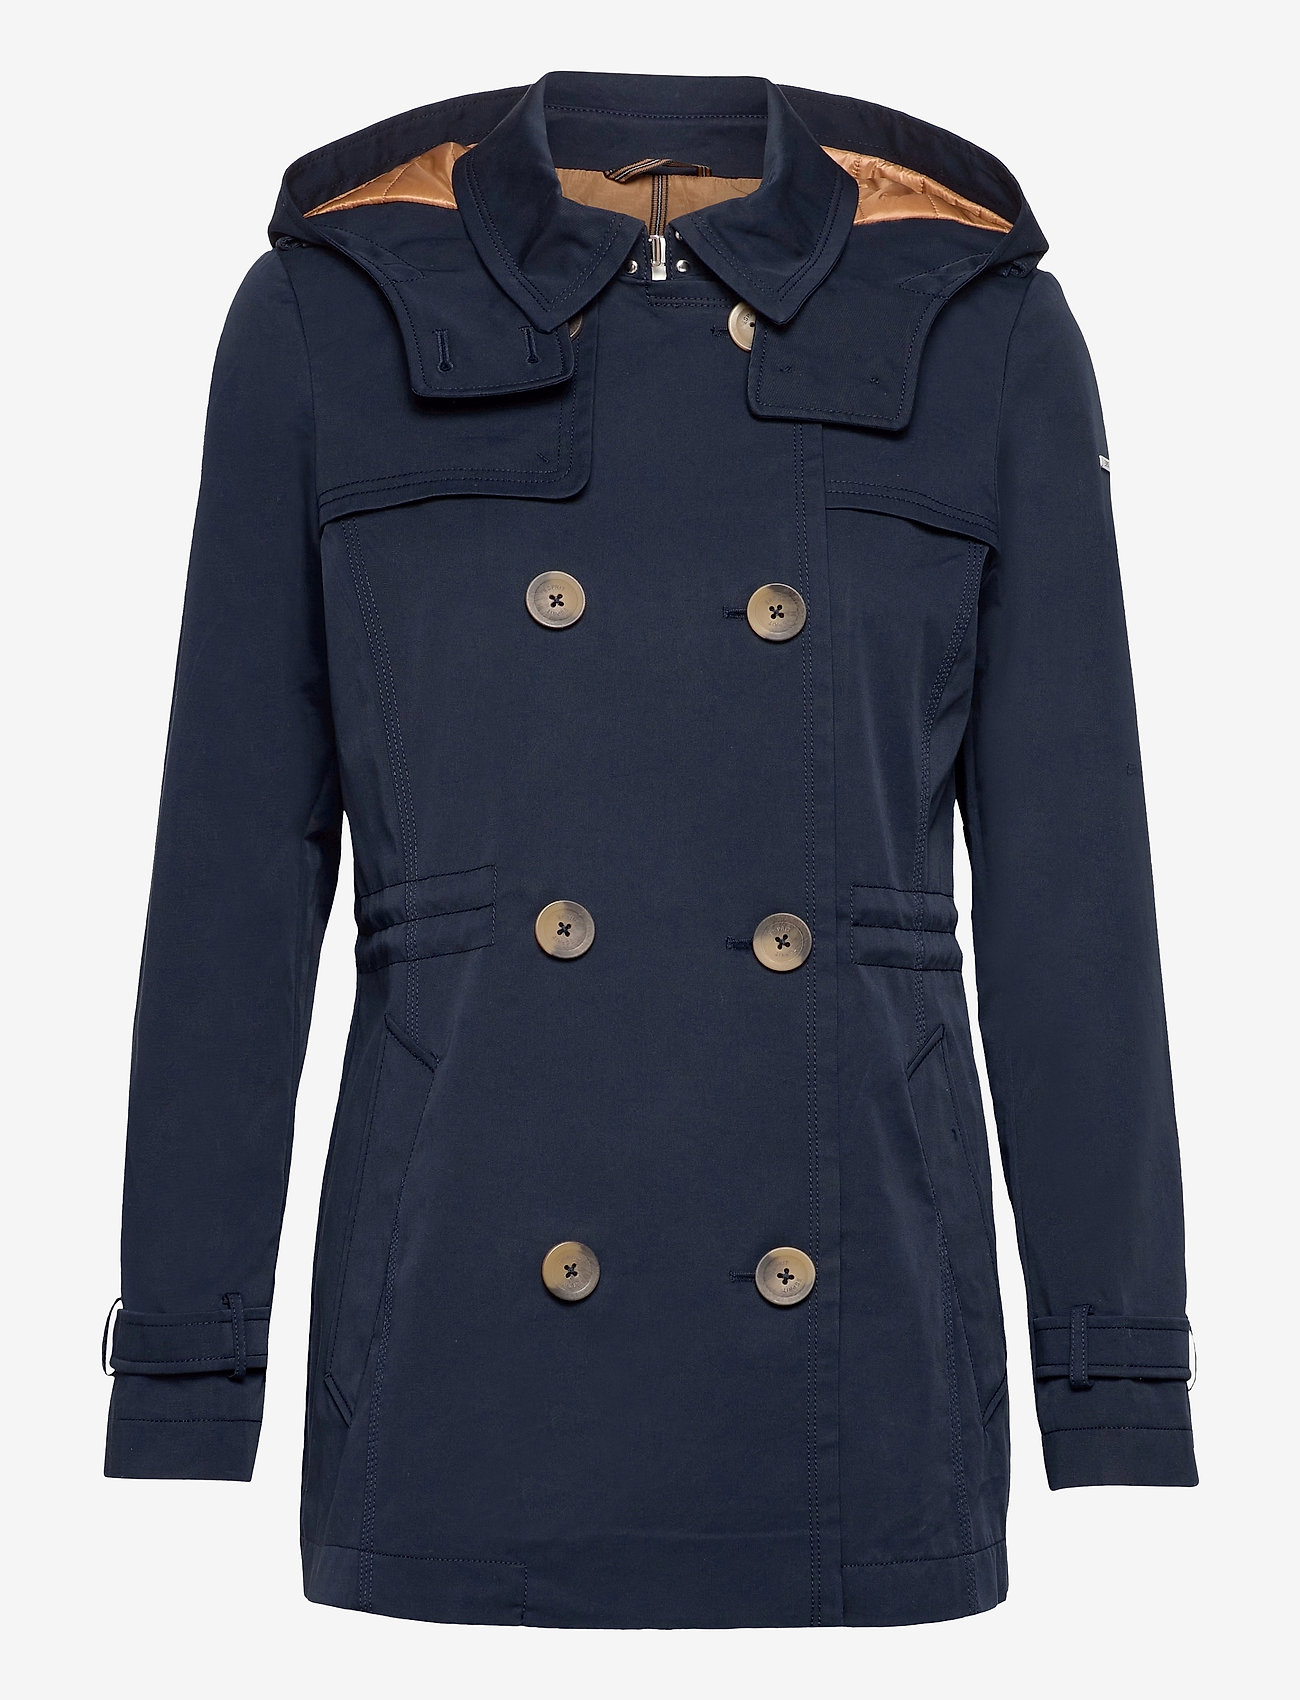 Esprit Casual - Jackets outdoor woven - trenchs - navy - 0